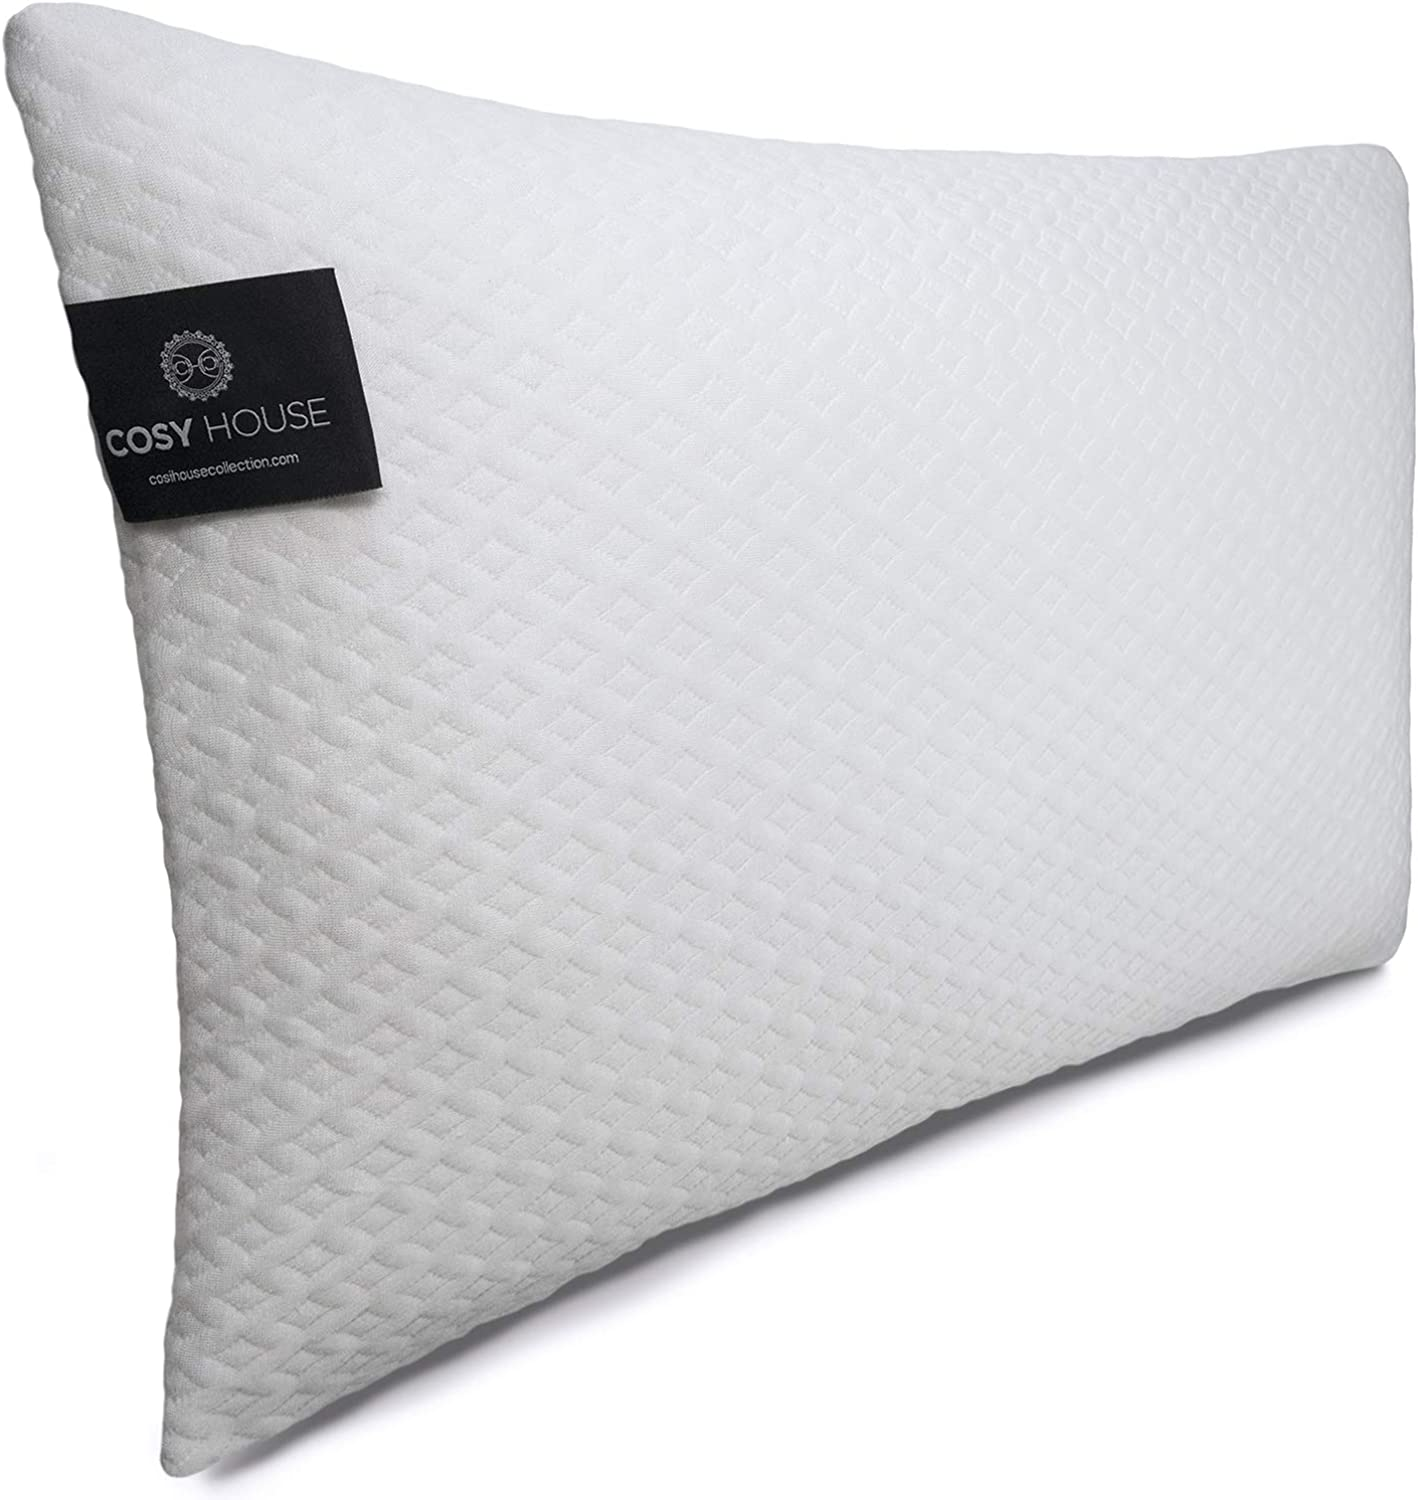 Cosy House Collection Luxury Bamboo Shredded Memory Foam Pillow - Adjustable Fit - Zipper Closure - Removable Fill - Ultra Soft, Cool & Breathable Hypoallergenic Pillow Cover (Queen)